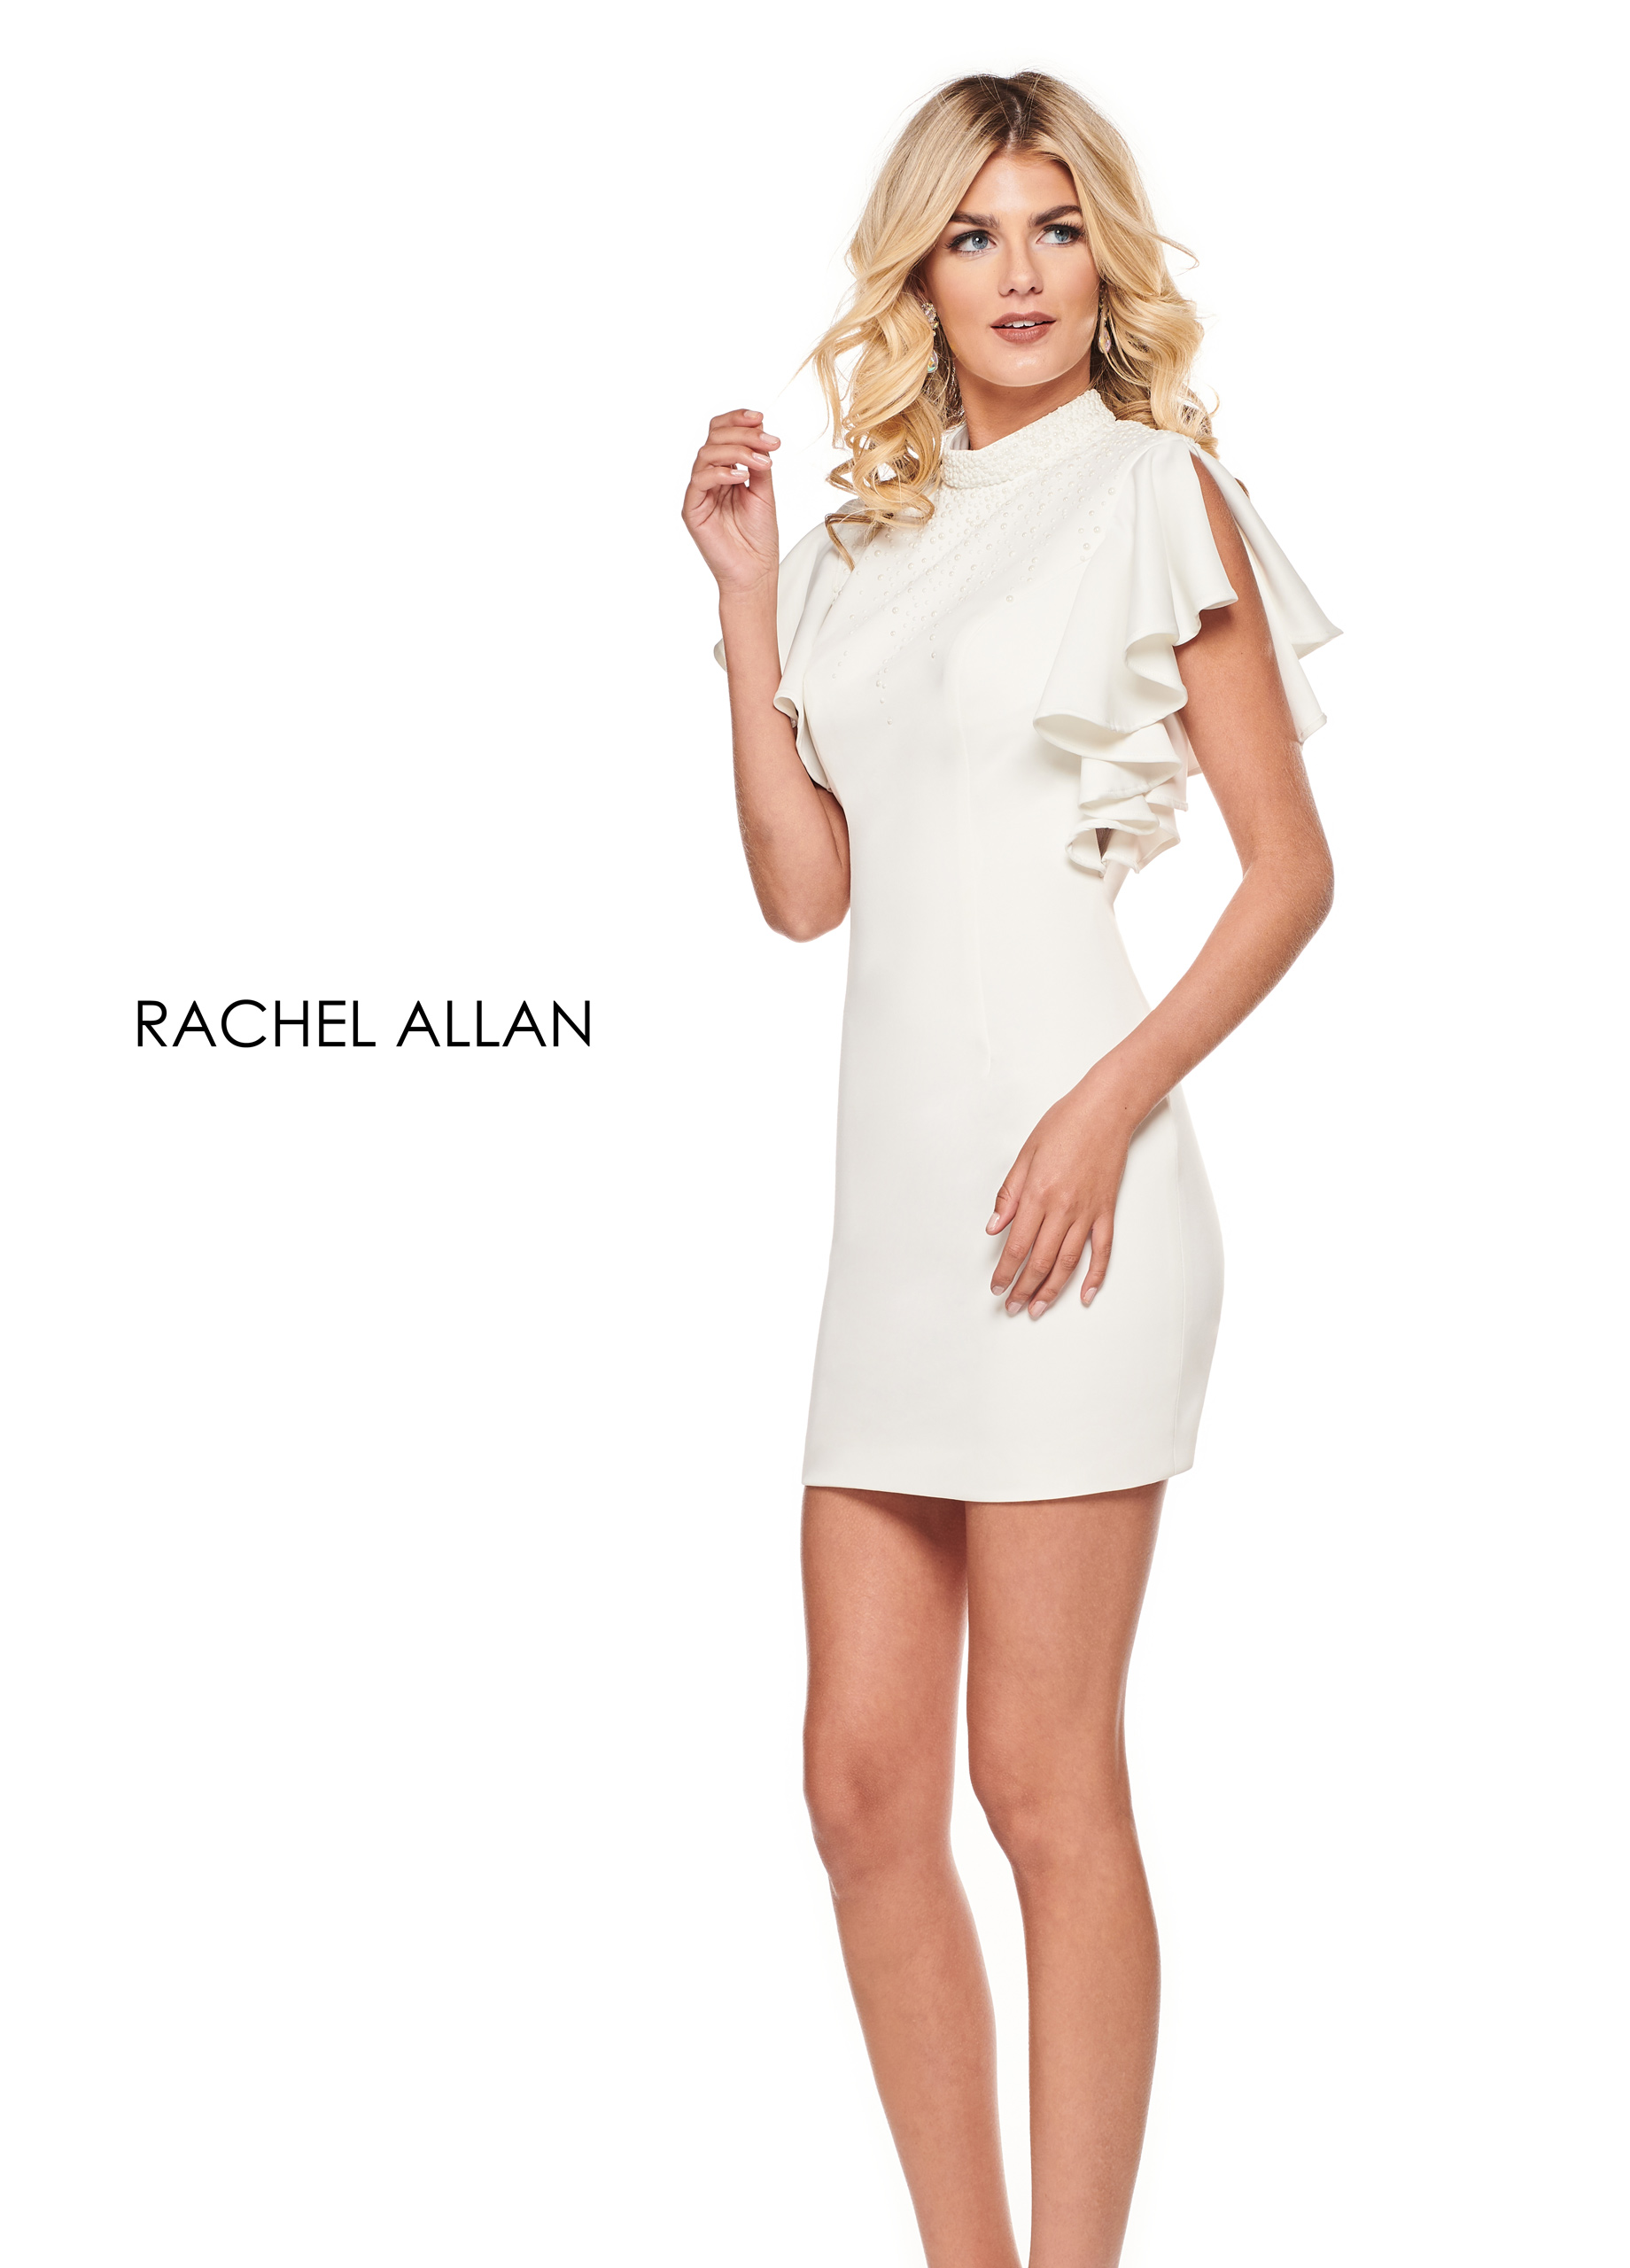 High Neckline Fitted Mini Cocktail Dresses in White Color